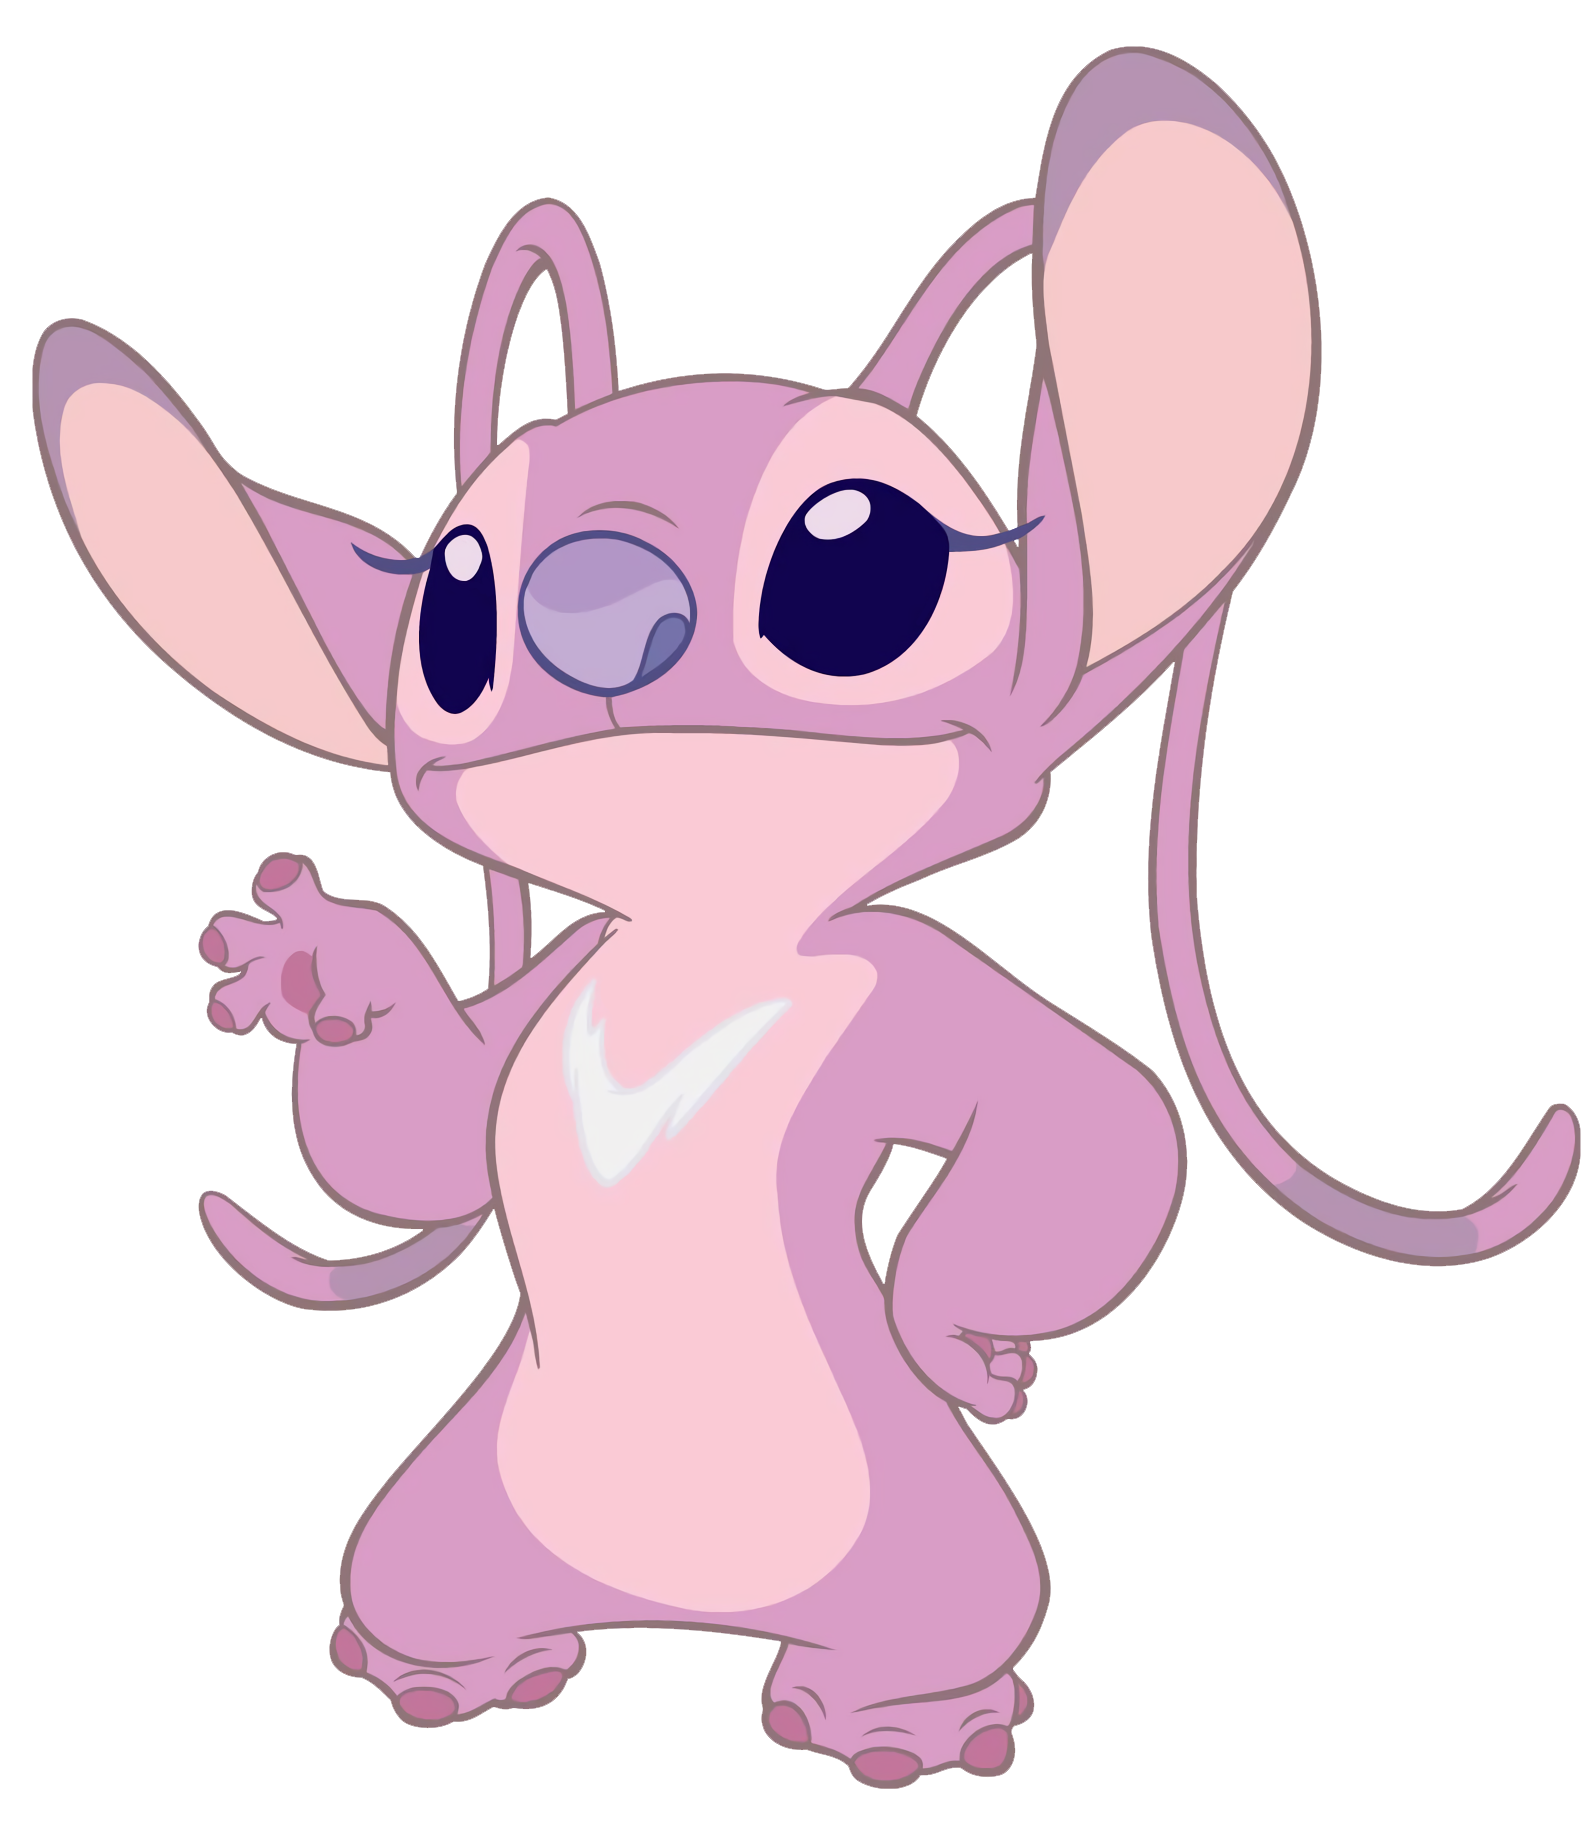 Stitch and angel png. Image transparent disney wiki